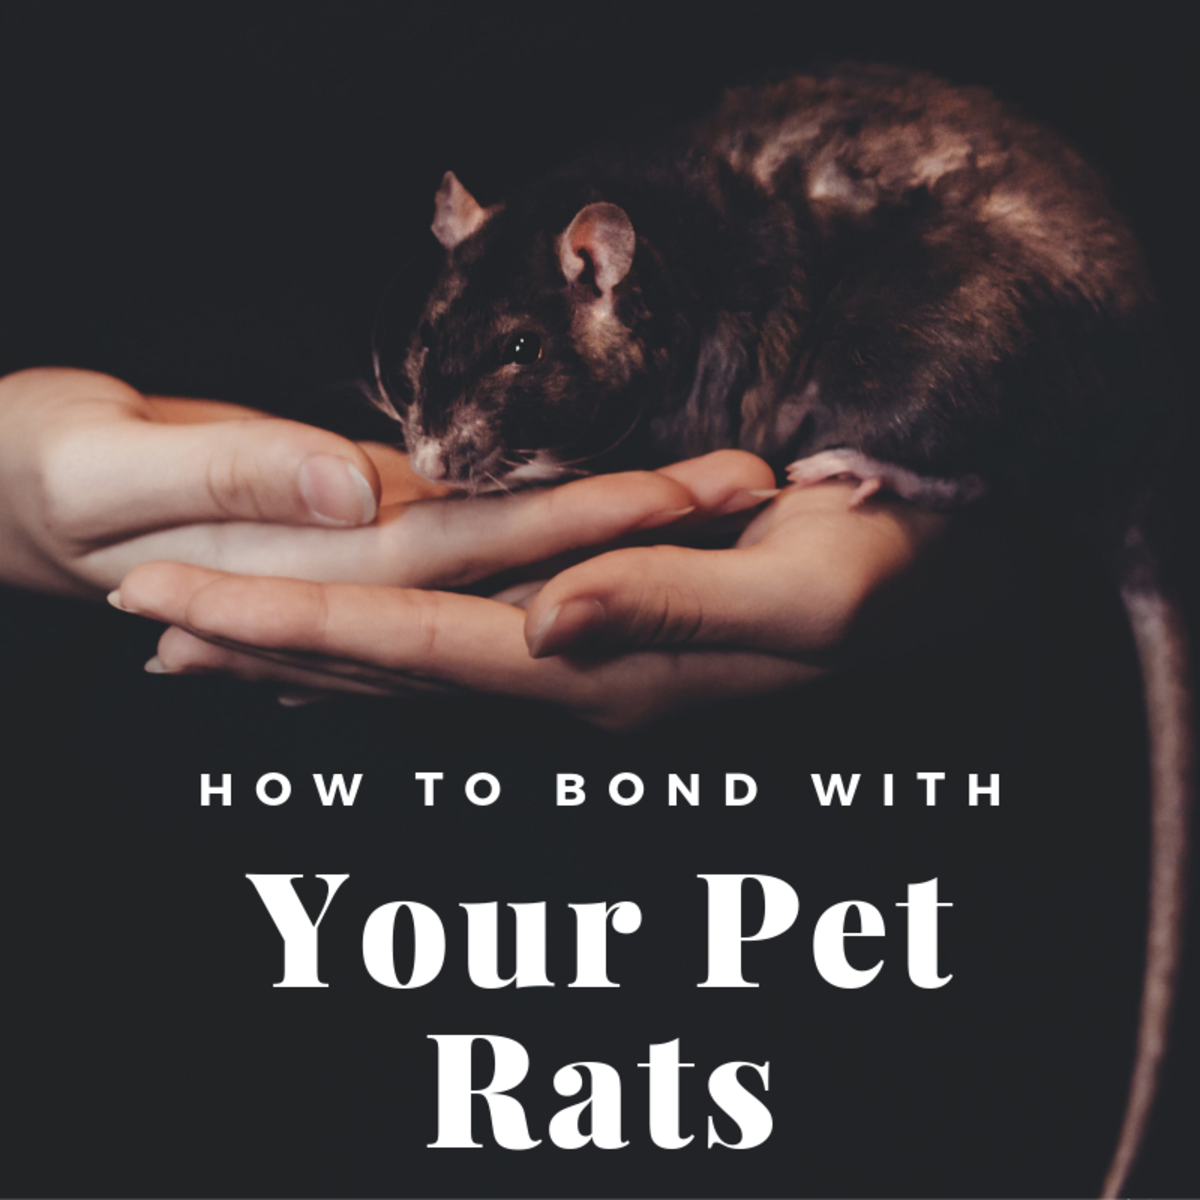 How to Bond With Your Pet Rats: A Beginner's Guide